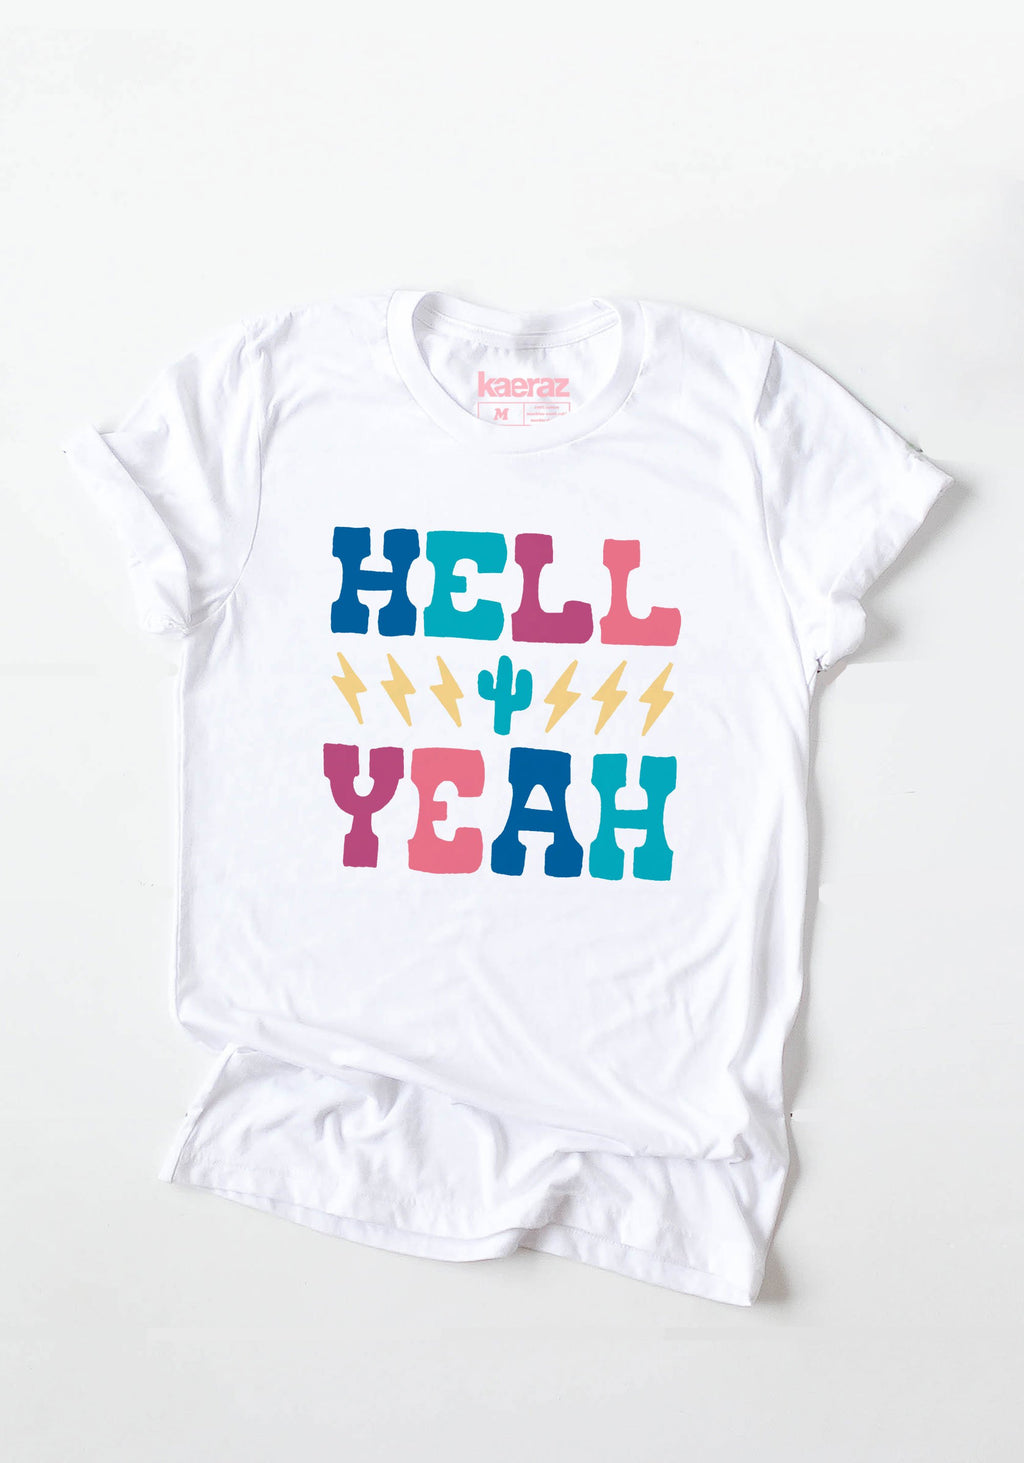 Hell Yeah Tee / womens graphic tees / vintage style 70s rock n roll band tshirt / cactus lightning bolt / music bands t shirt